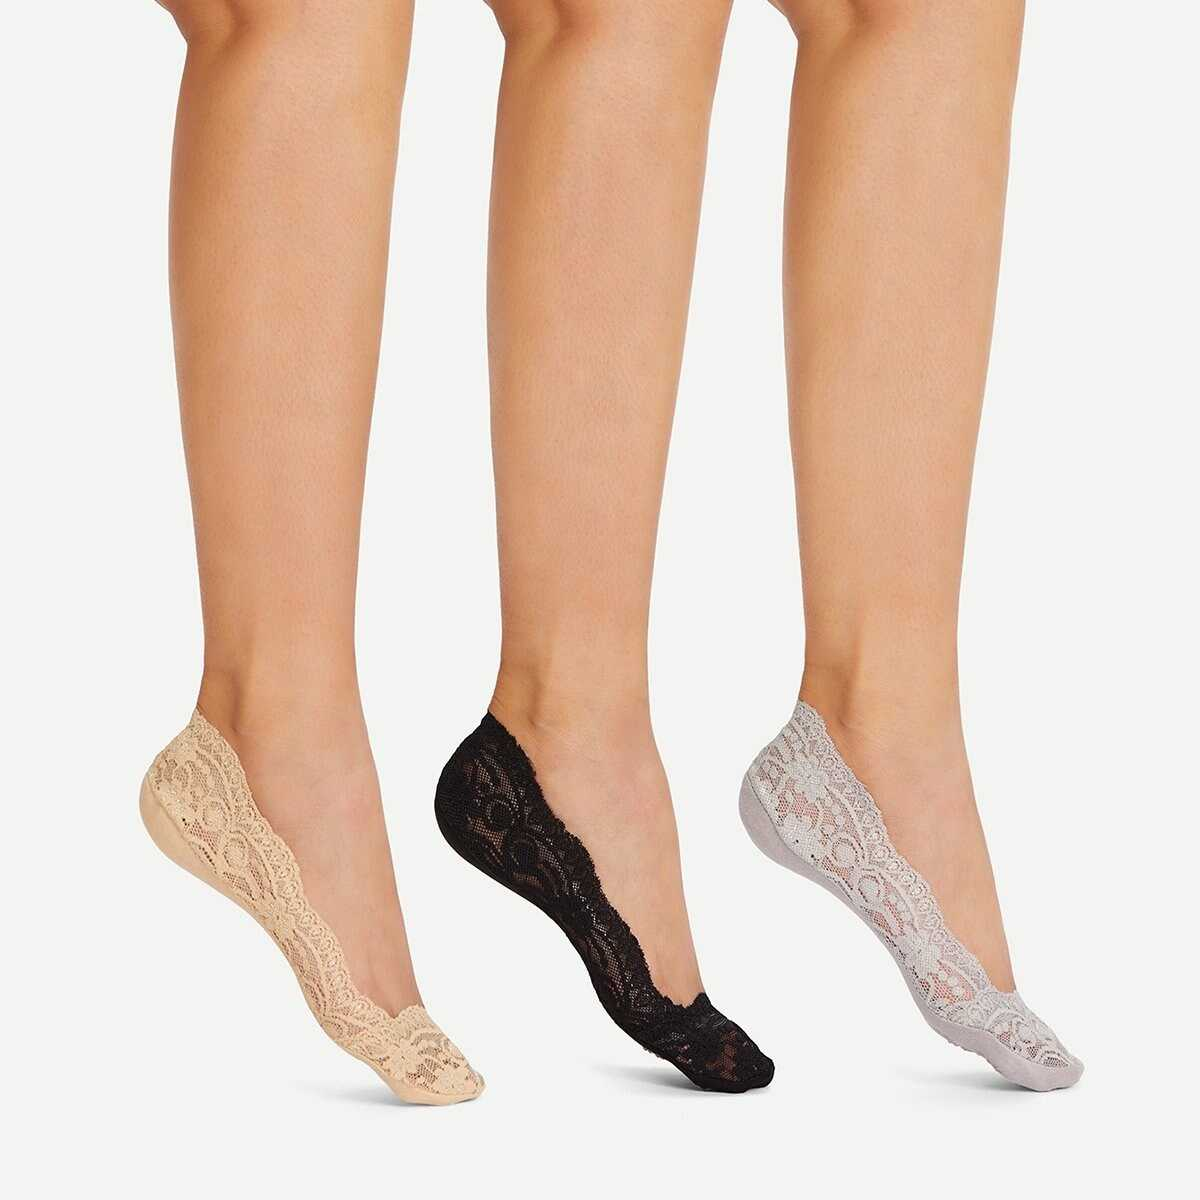 Lace Invisible Socks 3Pairs - Shein - GOOFASH